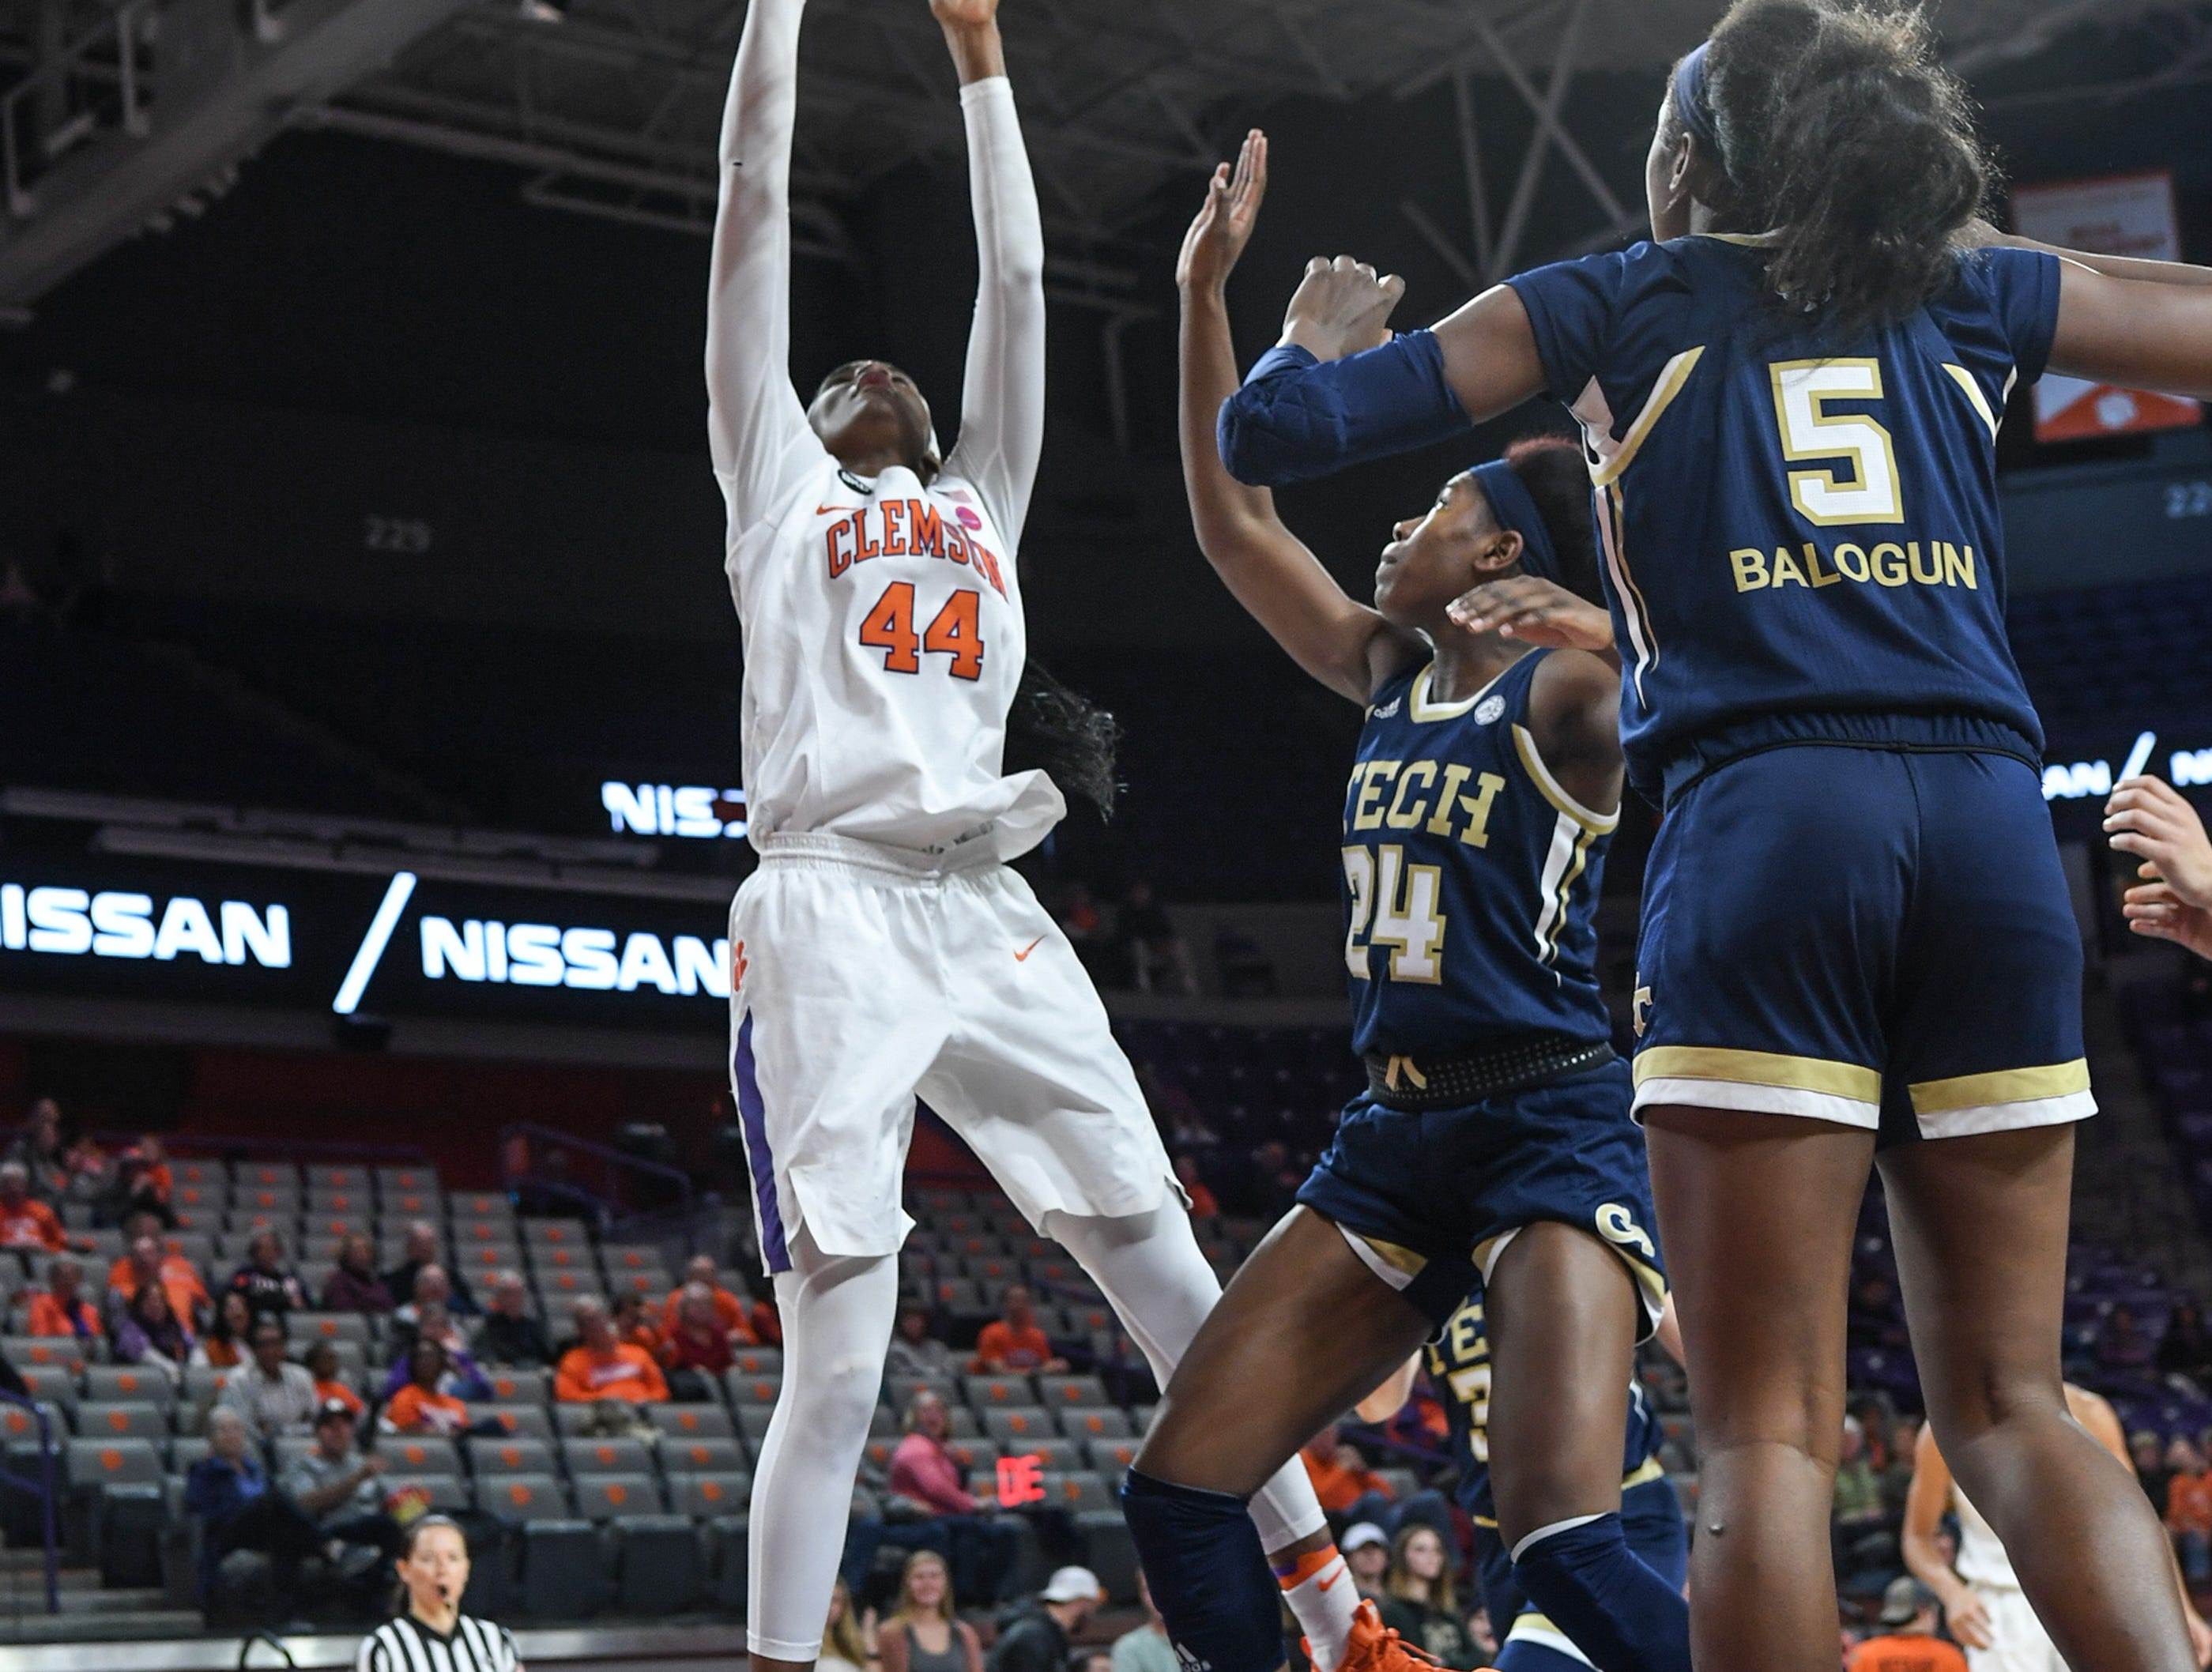 Clemson center Kobi Thornton(44) shoots near Georgia Tech guard Liz Balogun(5) during the fourth quarter at Littlejohn Coliseum in Clemson Thursday, January 17, 2019.